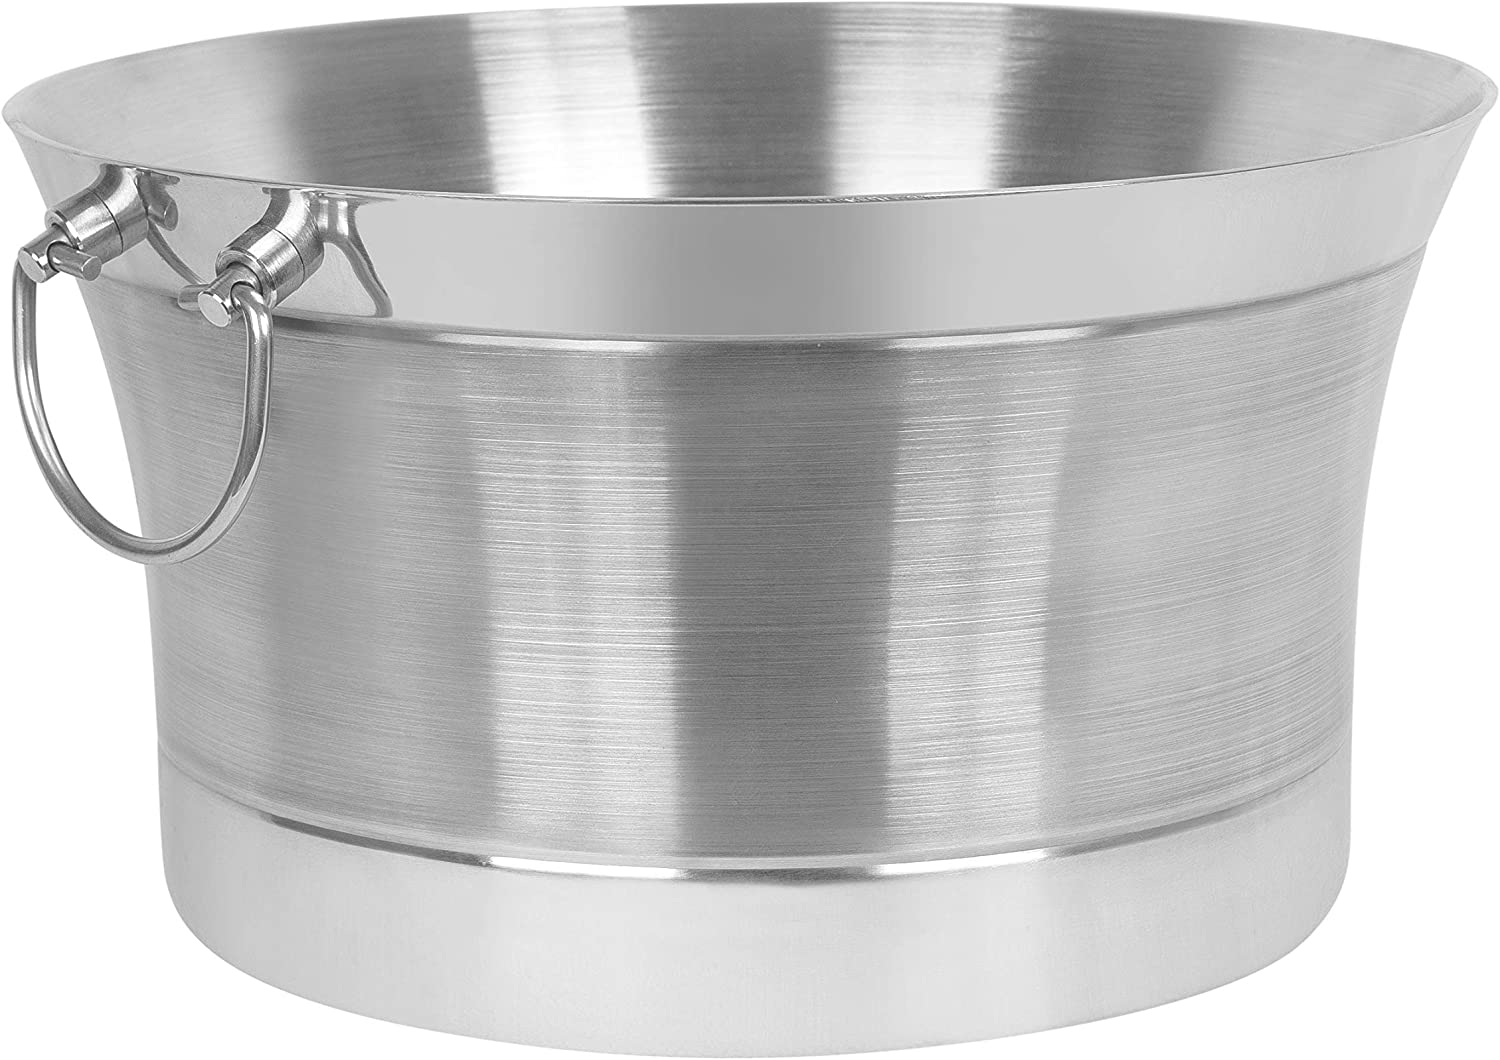 Birdrock Home Double Wall Round Beverage Tub Stainless Steel Ice Bucket Metal Drink Cooler House Party Handles Small Container Small Kitchen Dining